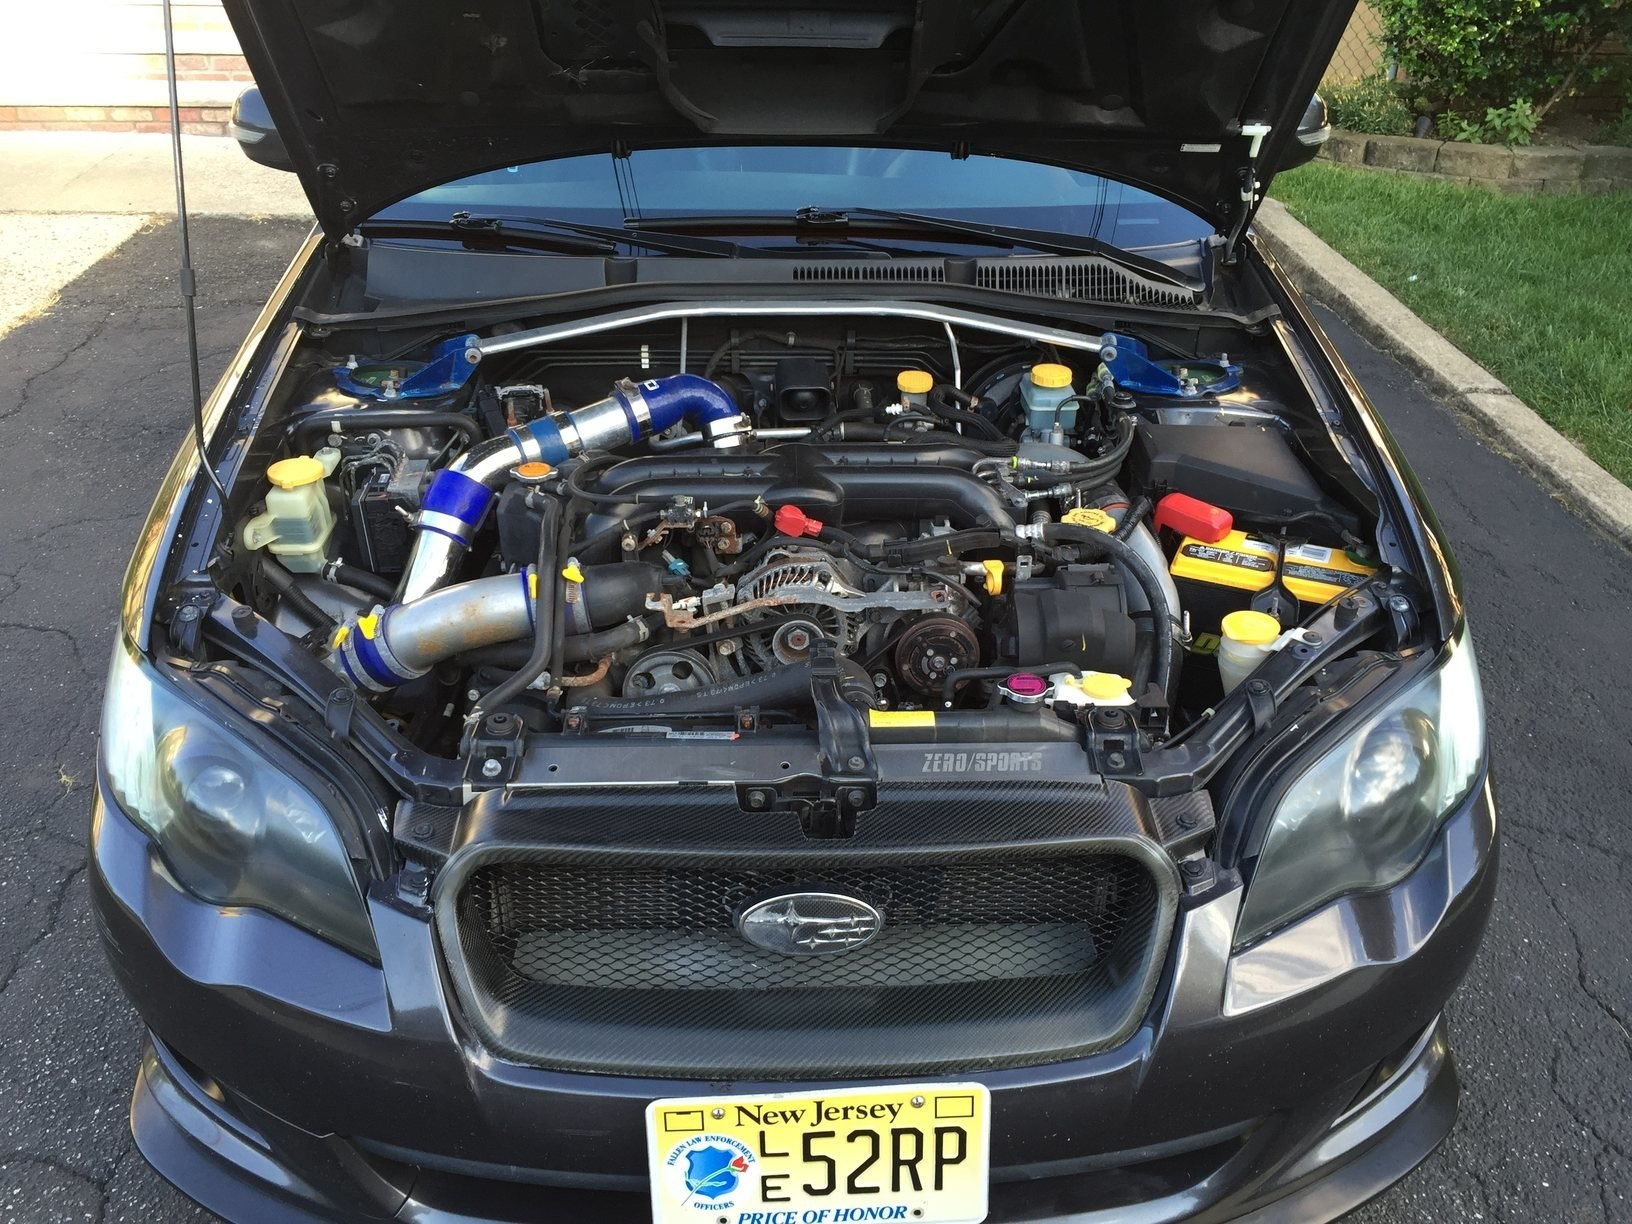 Stage 3 Subaru Legacy Spec B, Clean Daily Driver